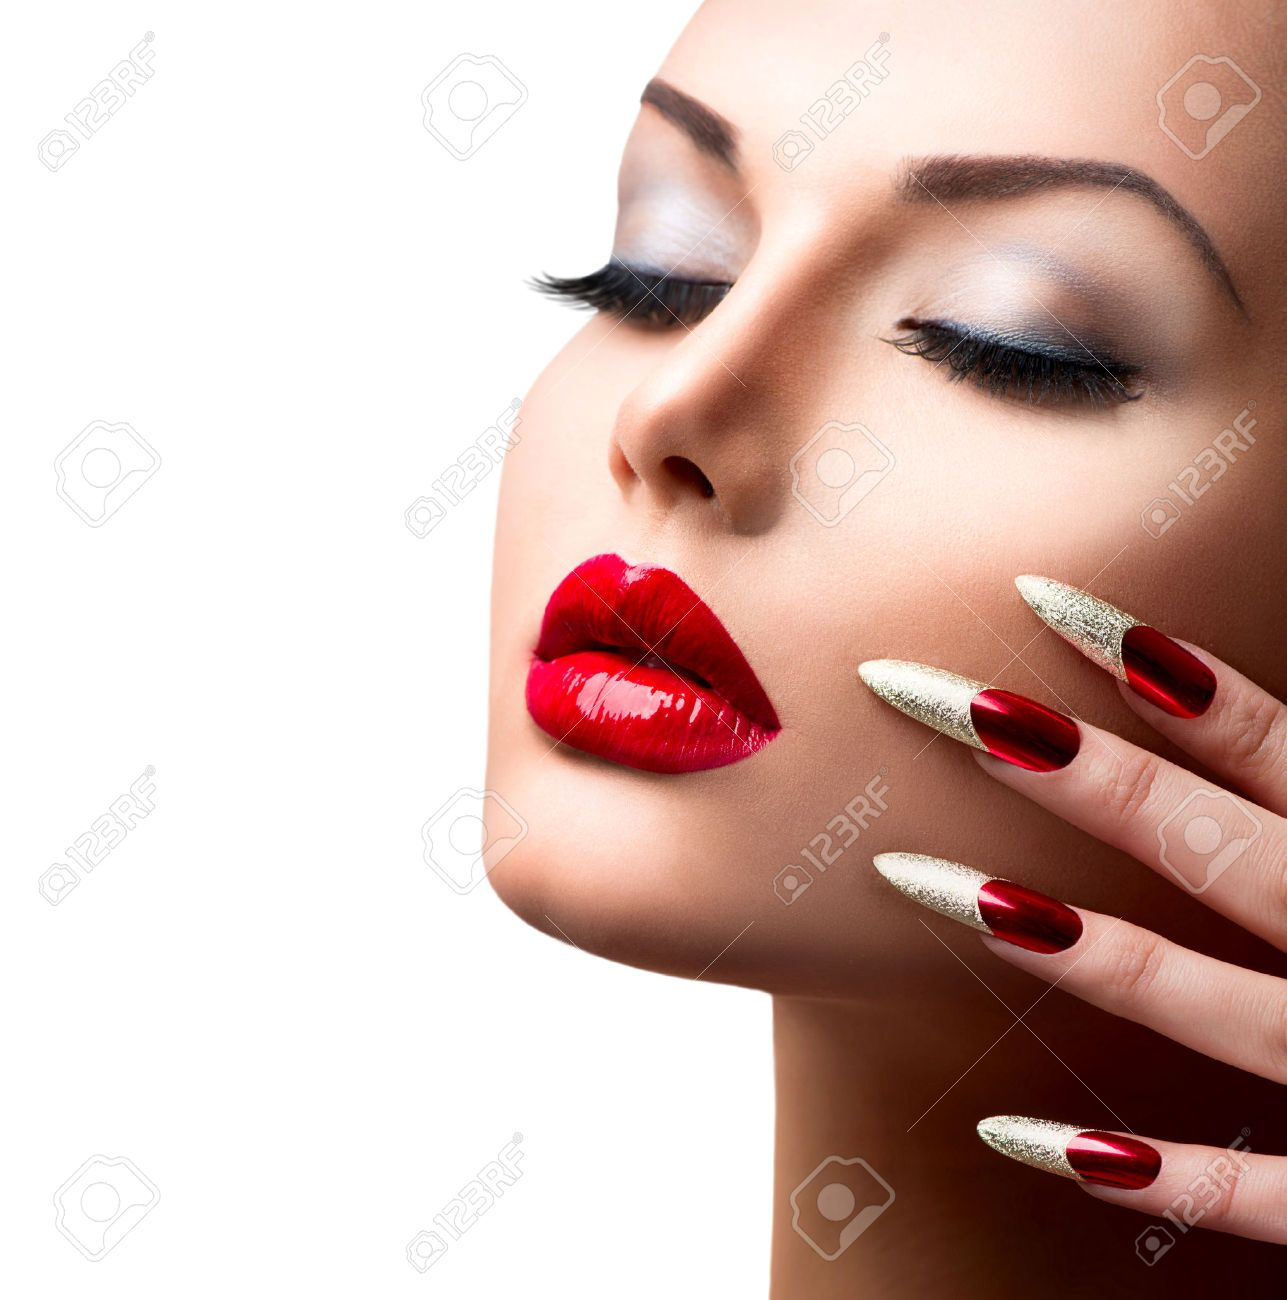 27472375 fashion beauty model girl manicure and make up Fashion style and nails facebook